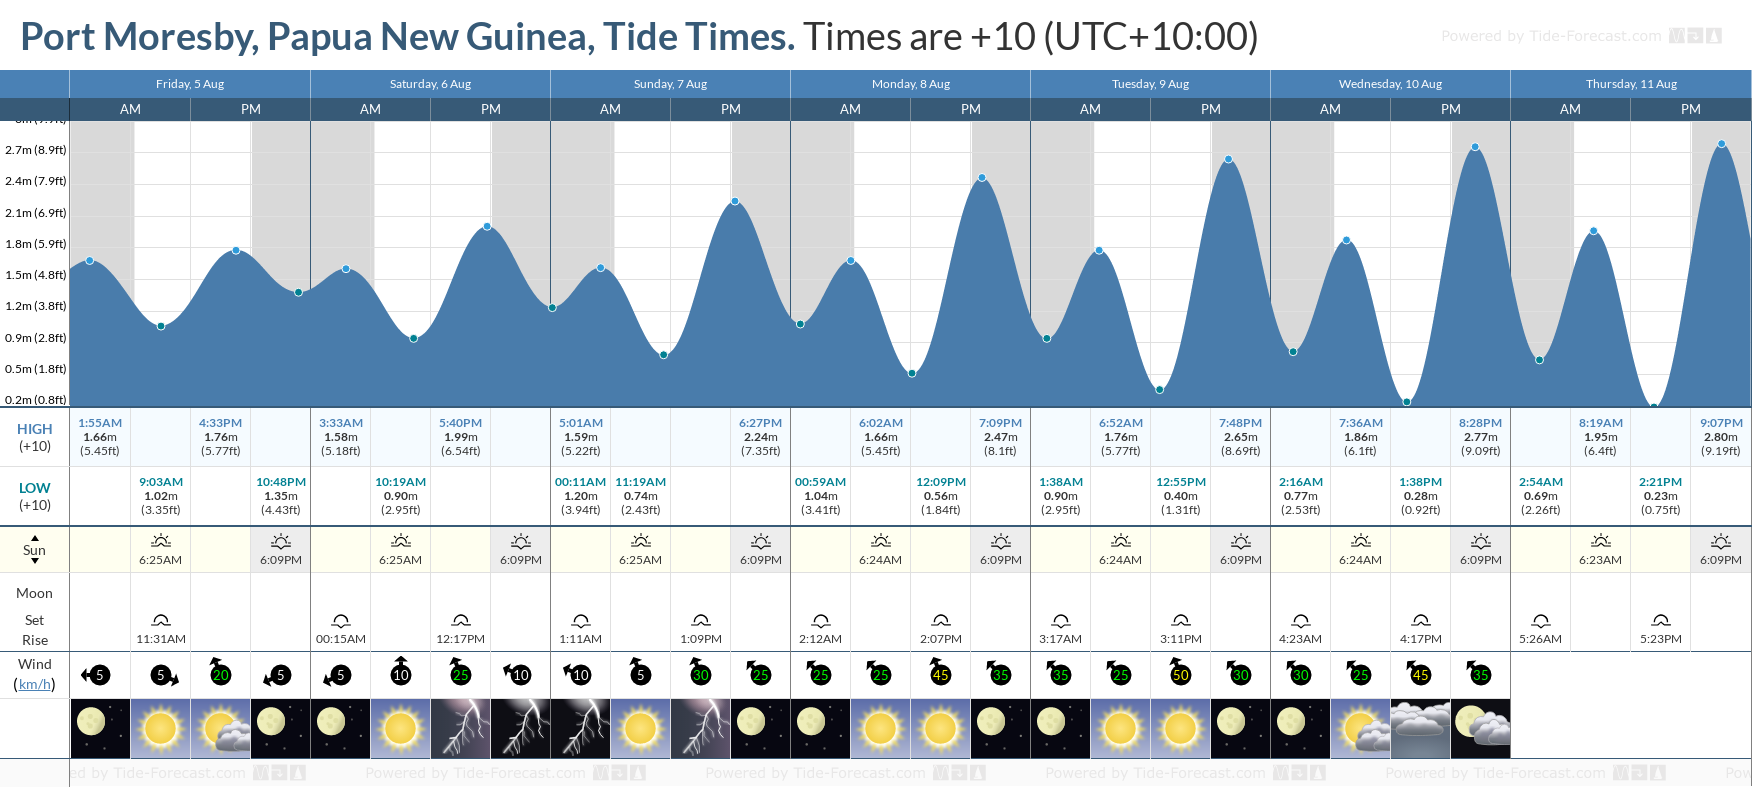 Port Moresby, Papua New Guinea Tide Chart including high and low tide tide times for the next 7 days